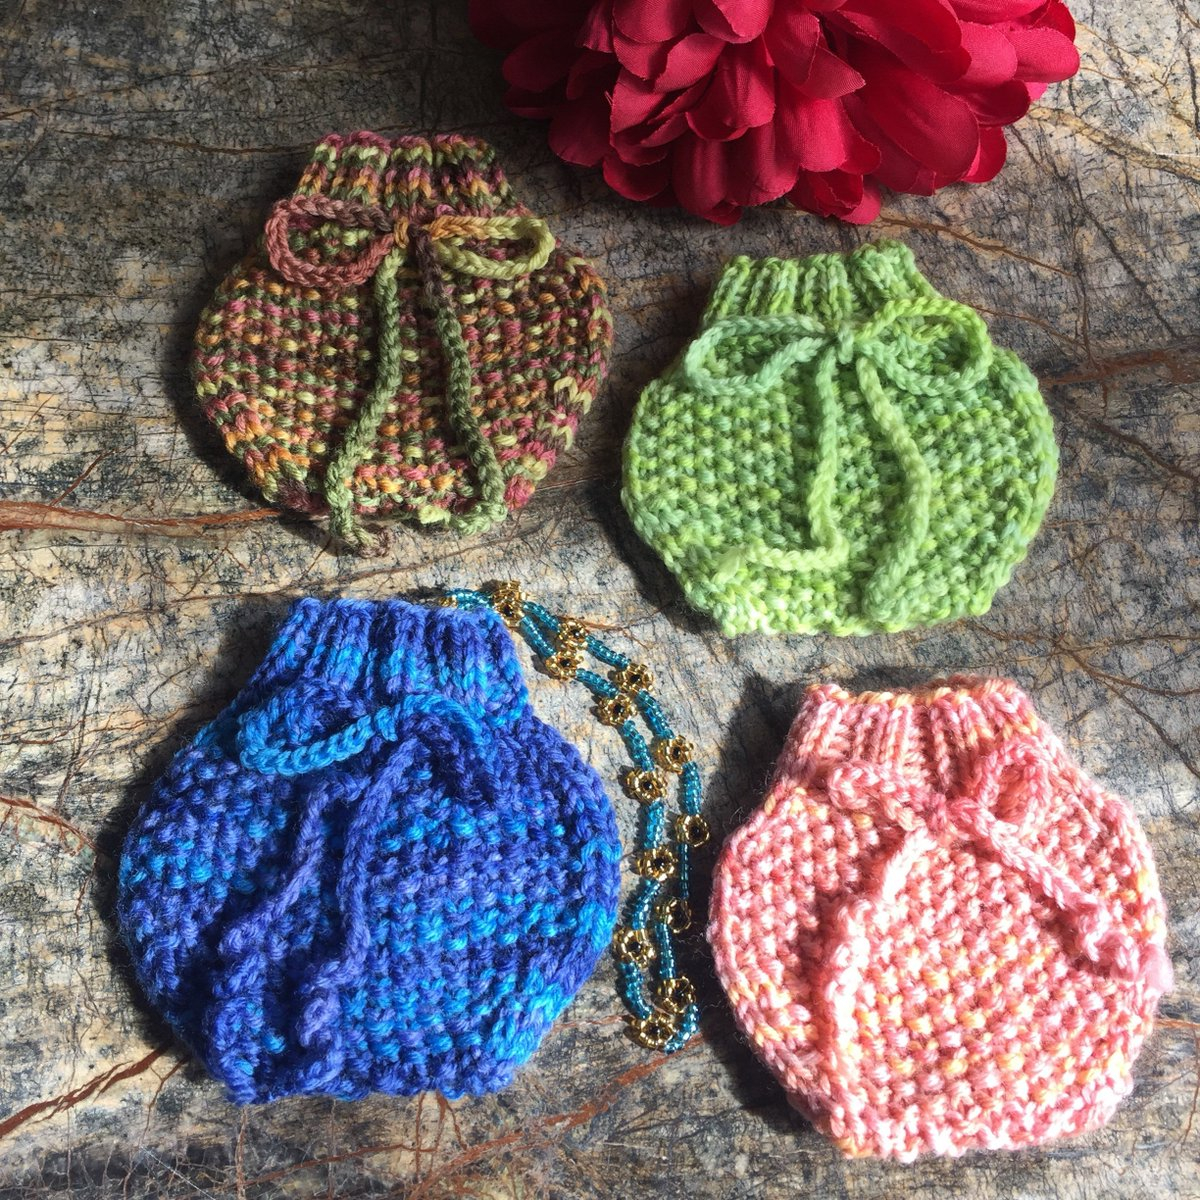 Knitted Sachet Pattern Concettascraftss Tweet Hand Knitted Pouch Gift Bag Necklace